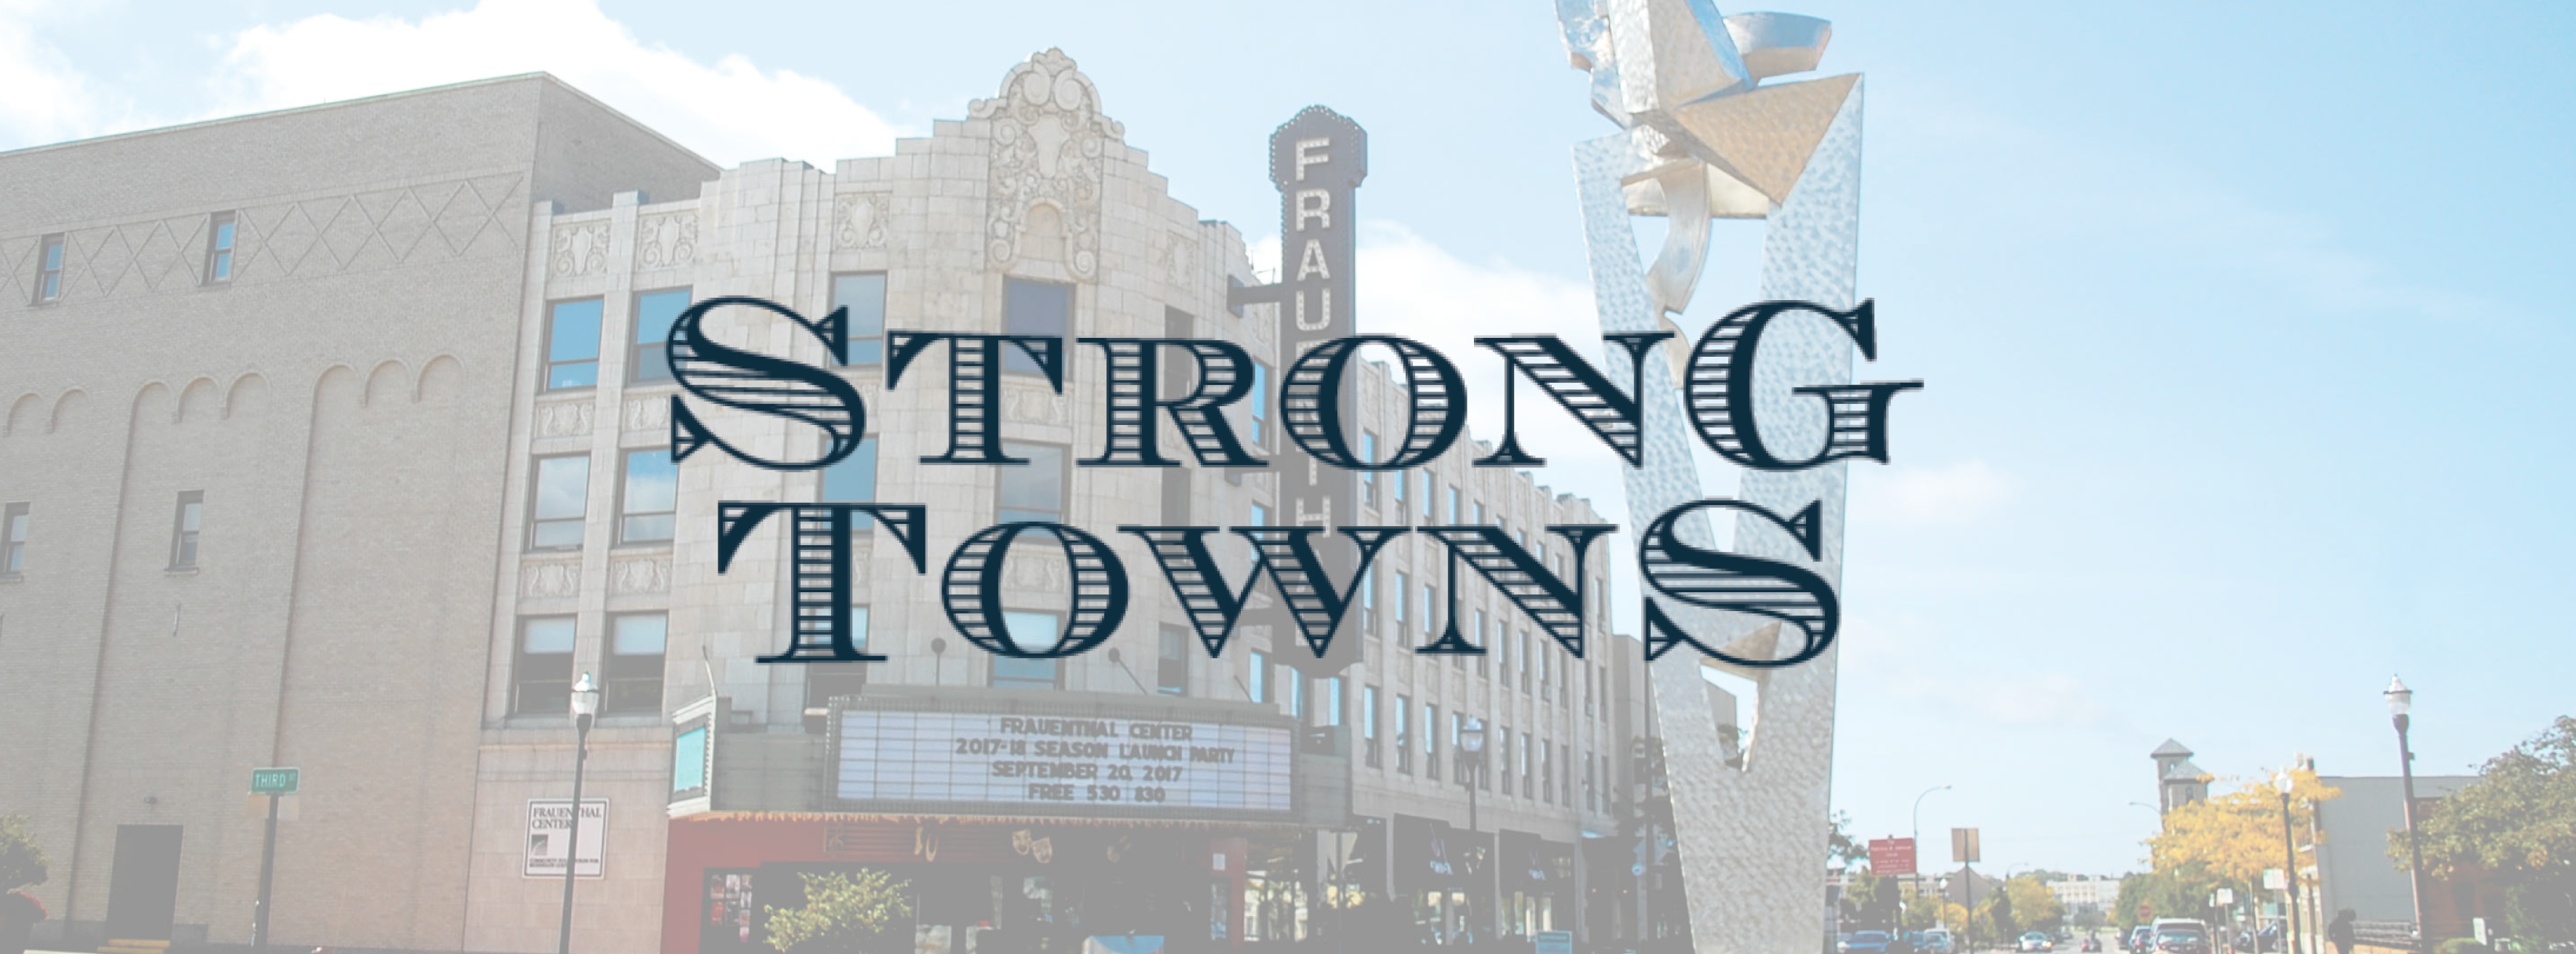 Strong Towns logo with Frauenthal Theater in the background